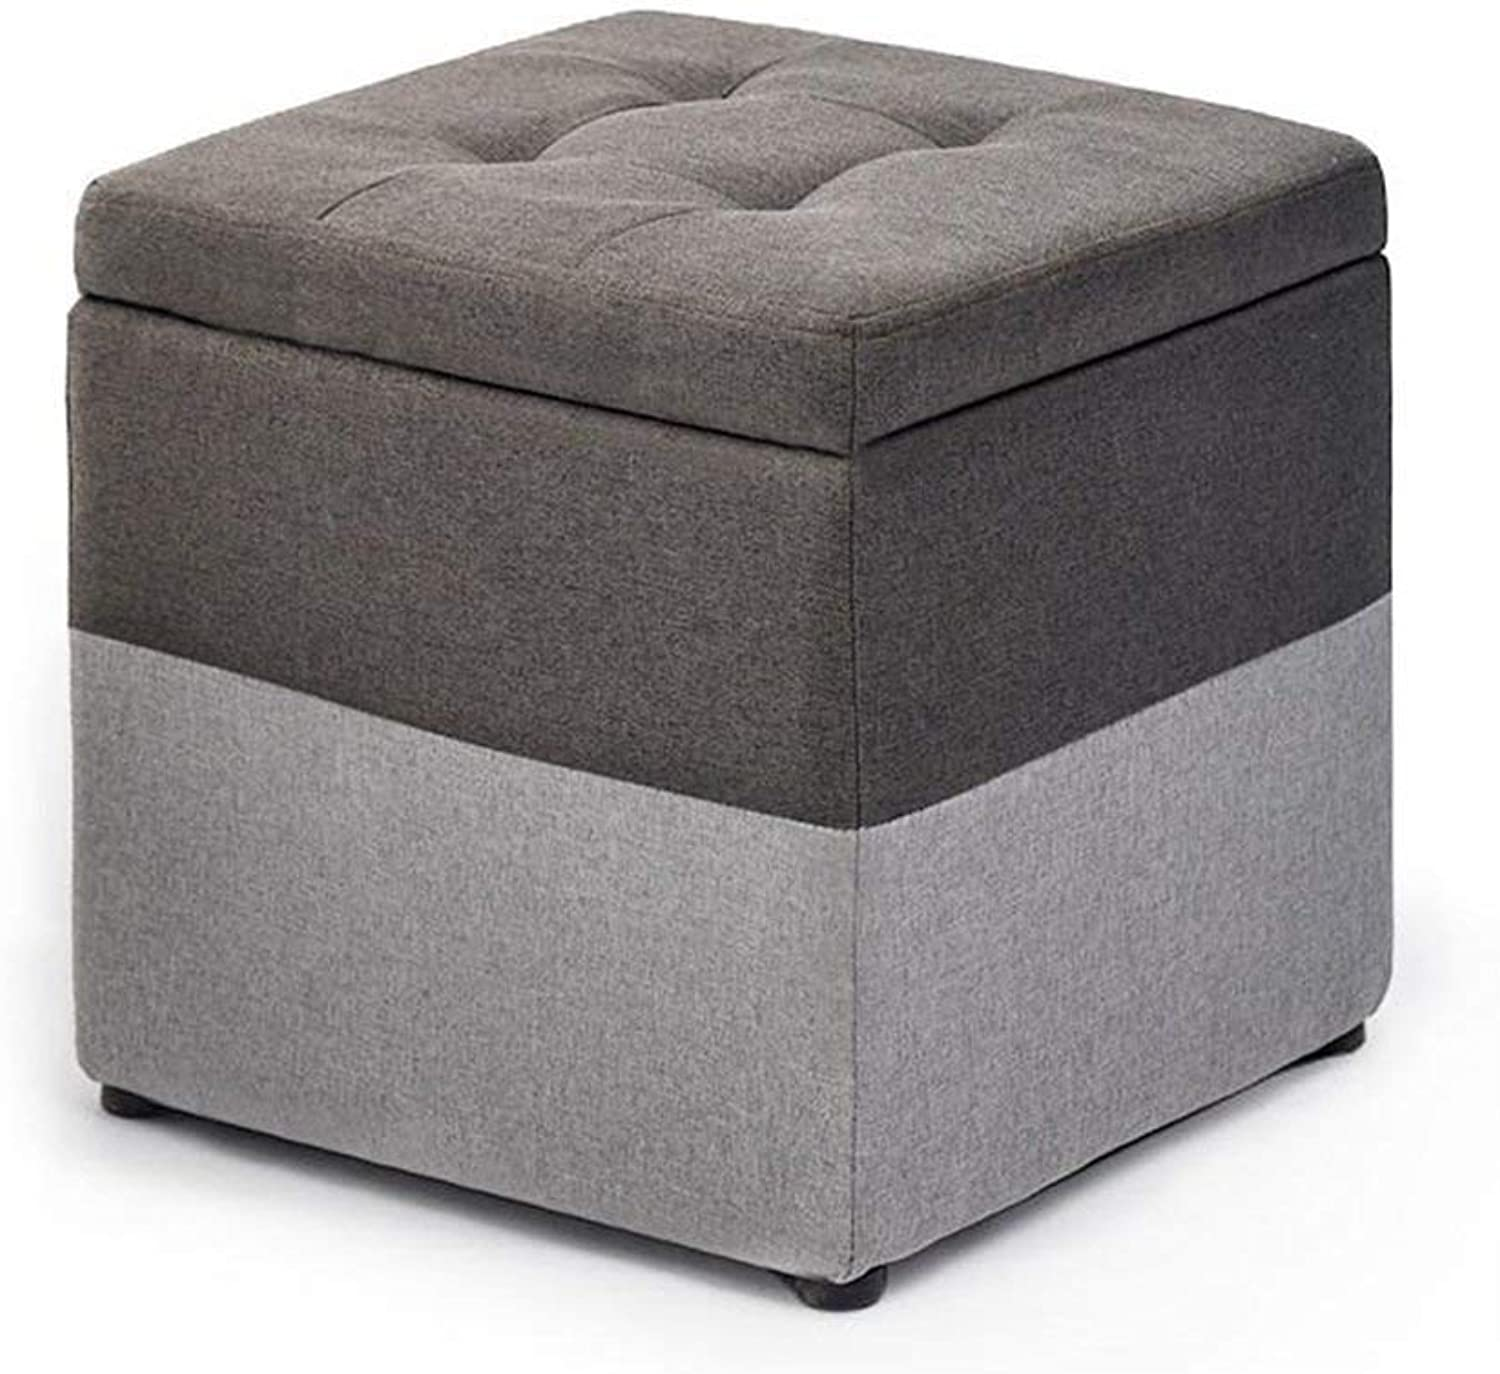 Footstool Living Room Sofa Change shoes Bench, Cushioned Small Chair Cushion Cushion Storage Stool JINRONG (color   C)